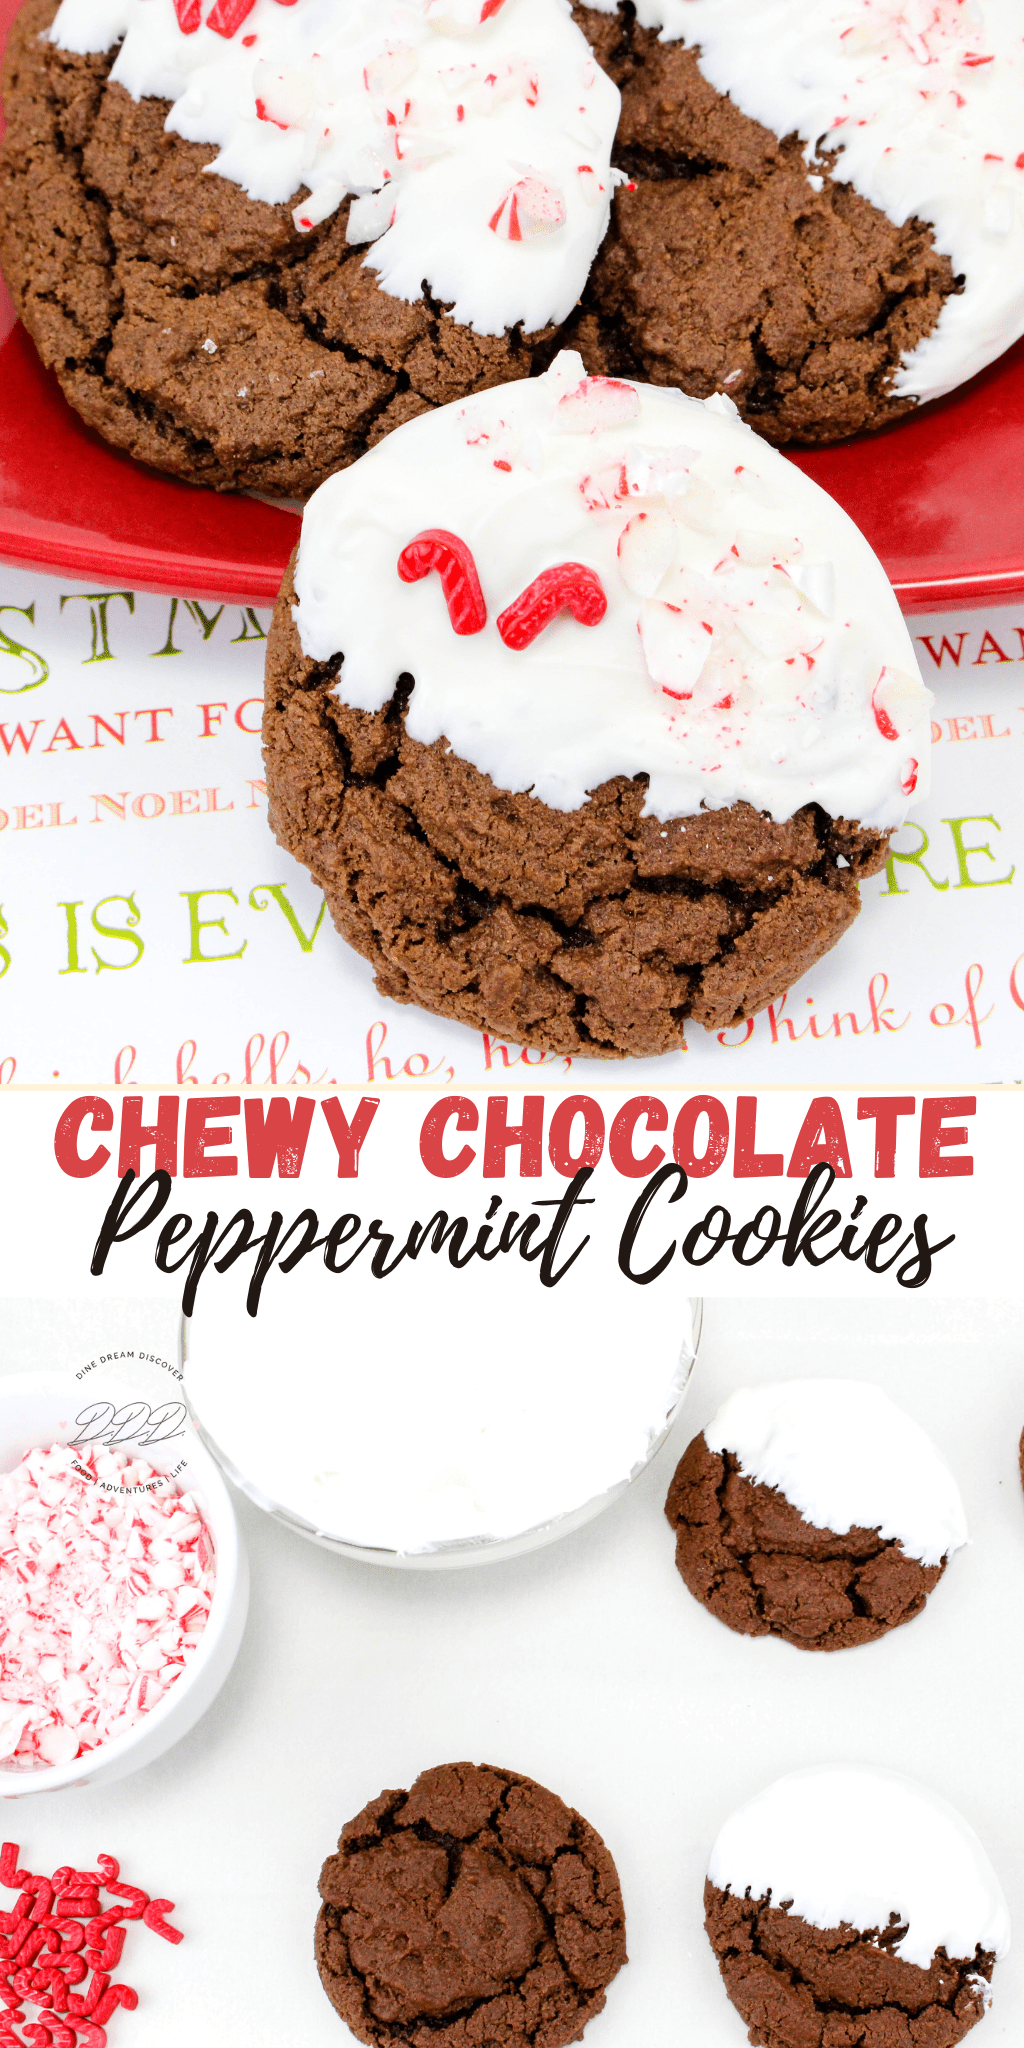 chewy chocolate peppermint cookies recipe